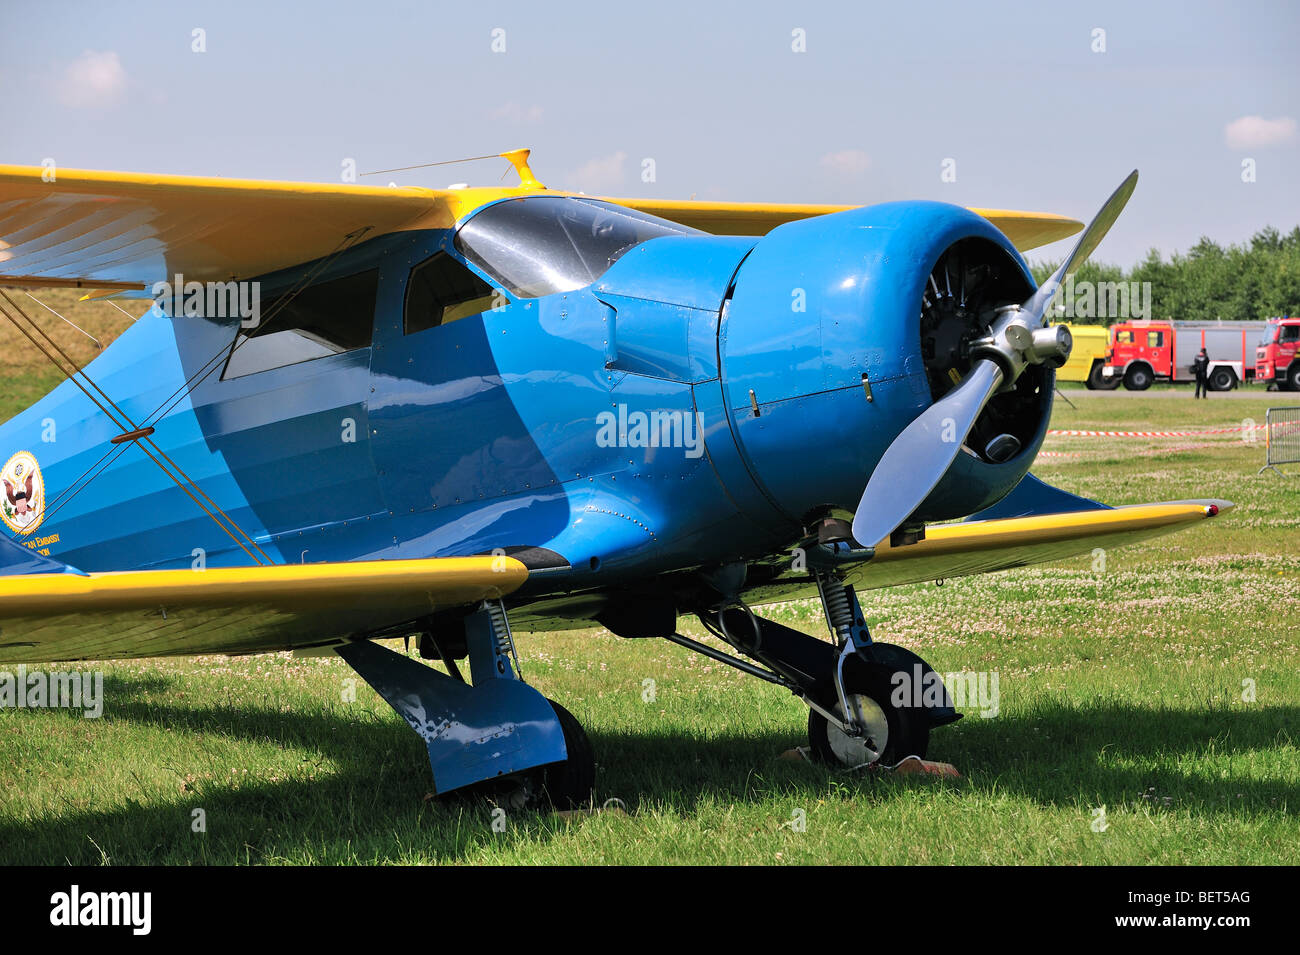 Biplane Beechcraft D17S Staggerwing at the airshow at Koksijde, Belgium - Stock Image